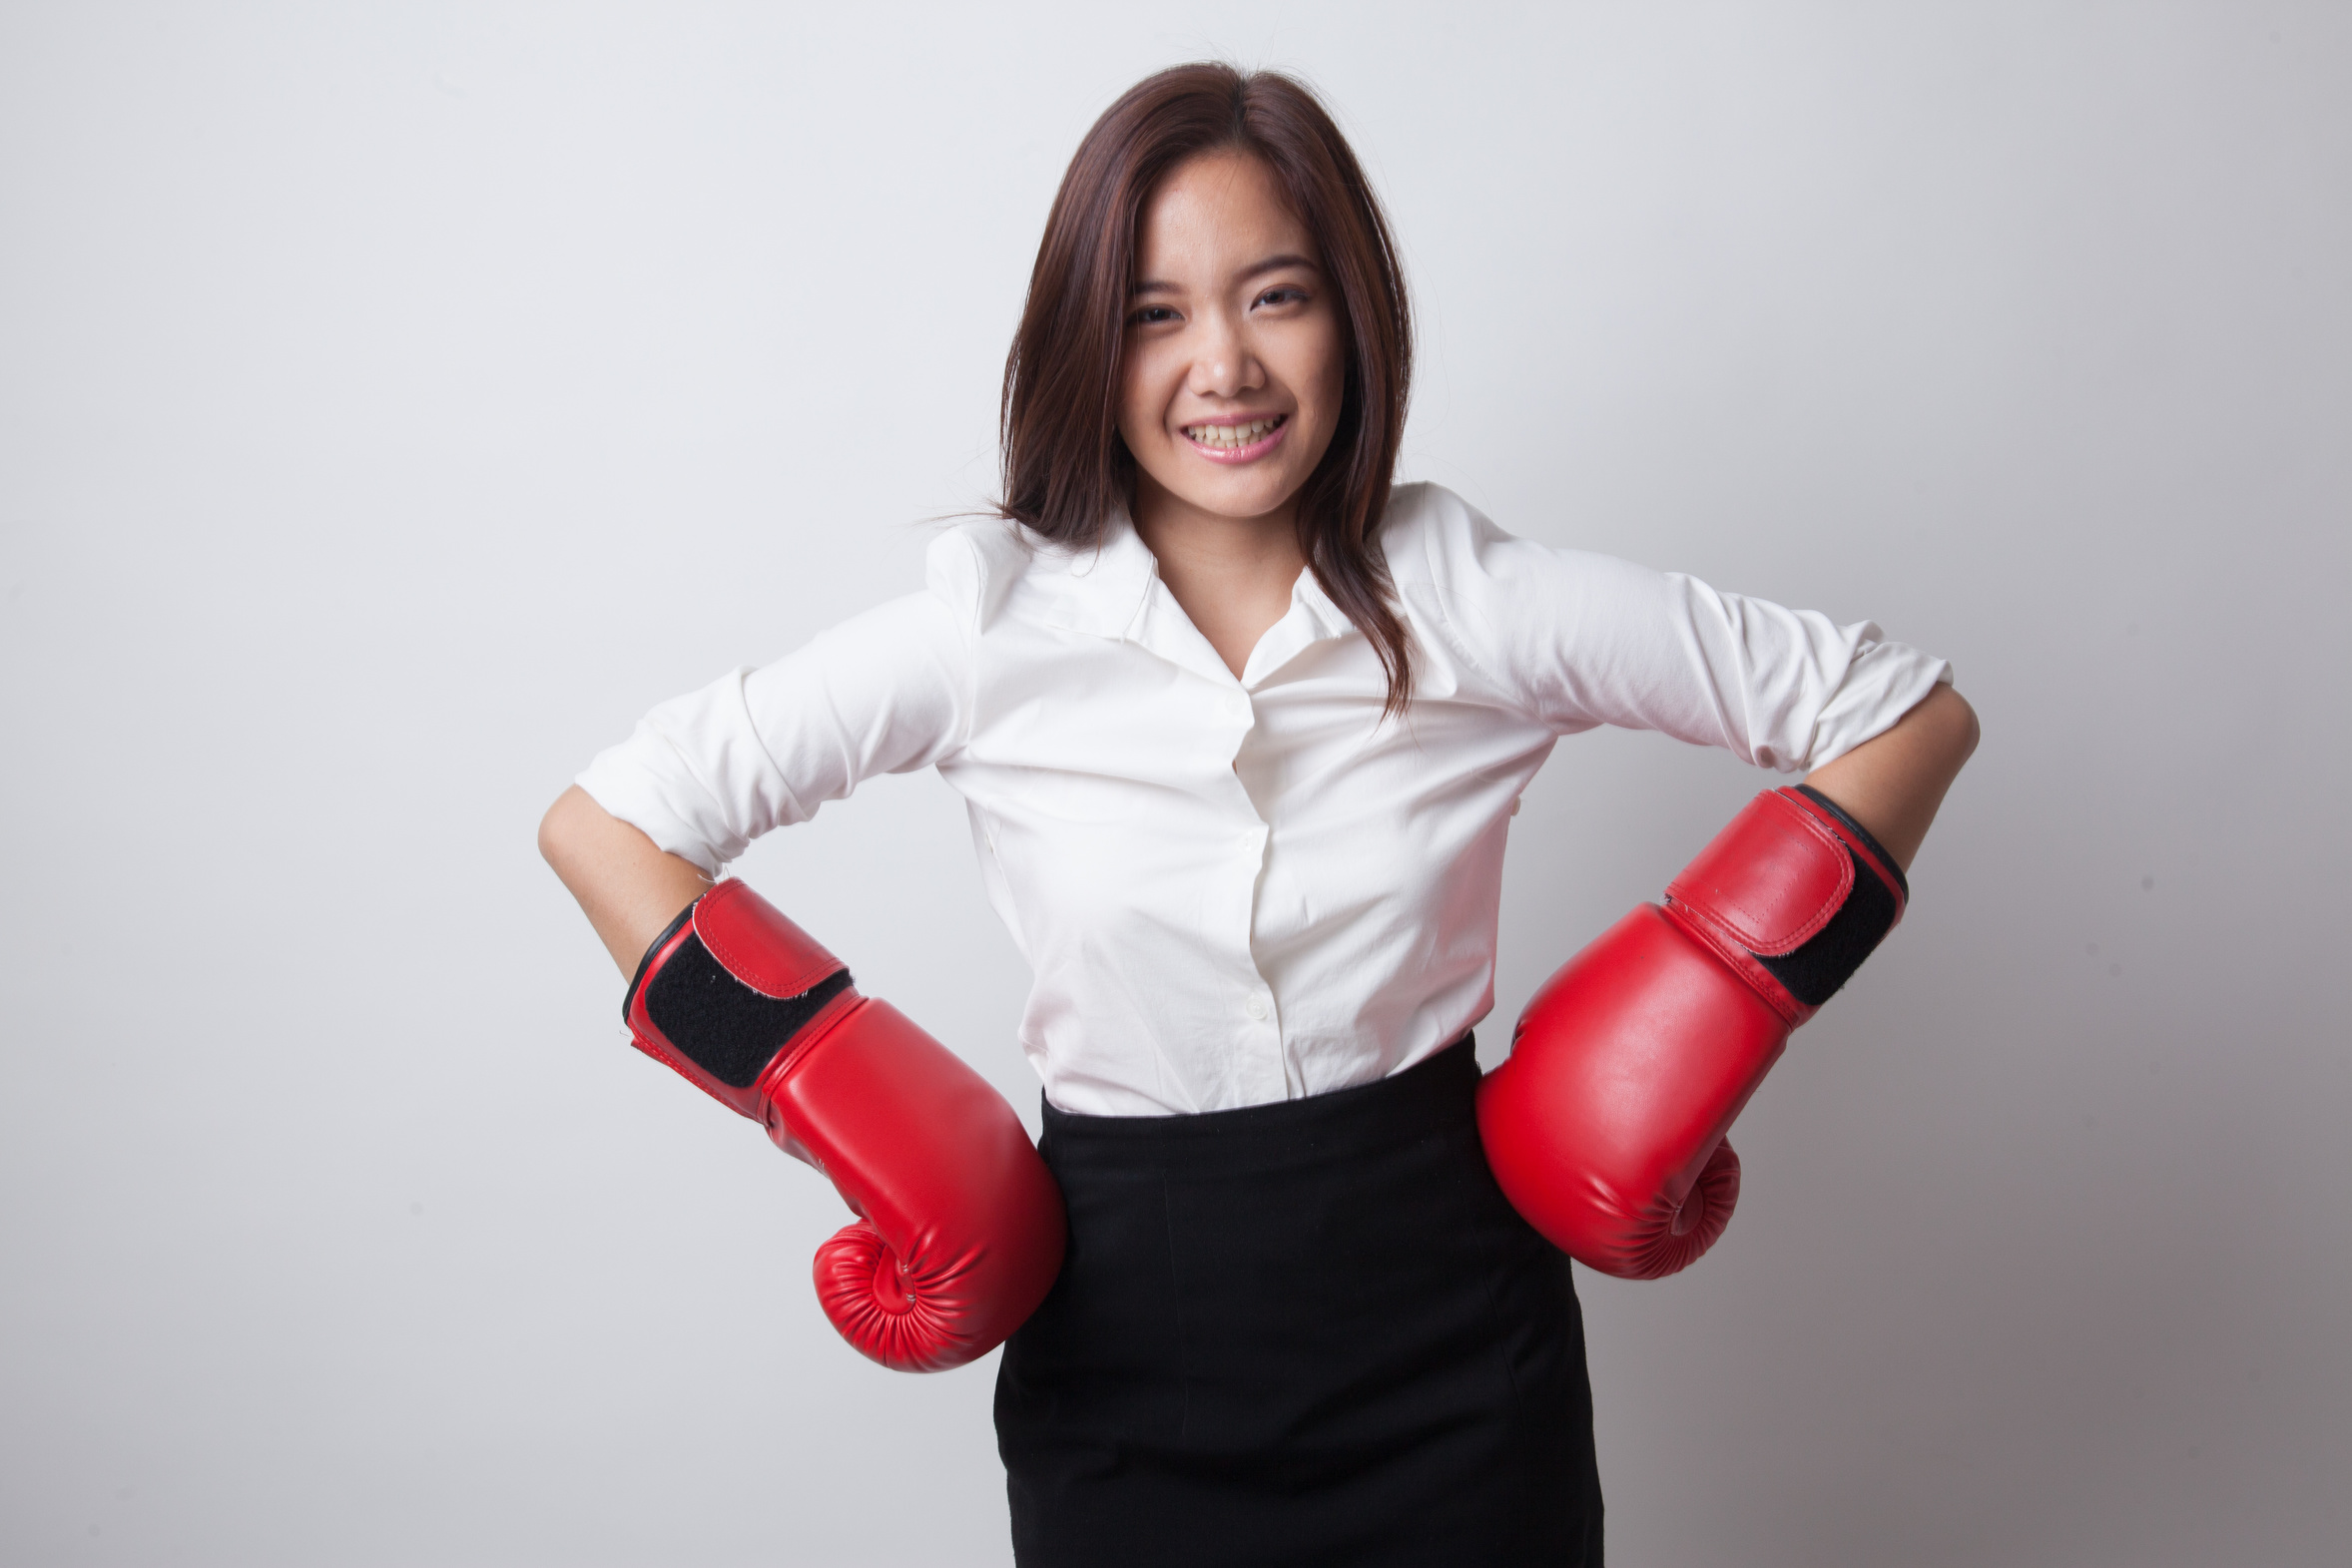 Young Asian woman with red boxing gloves on white background